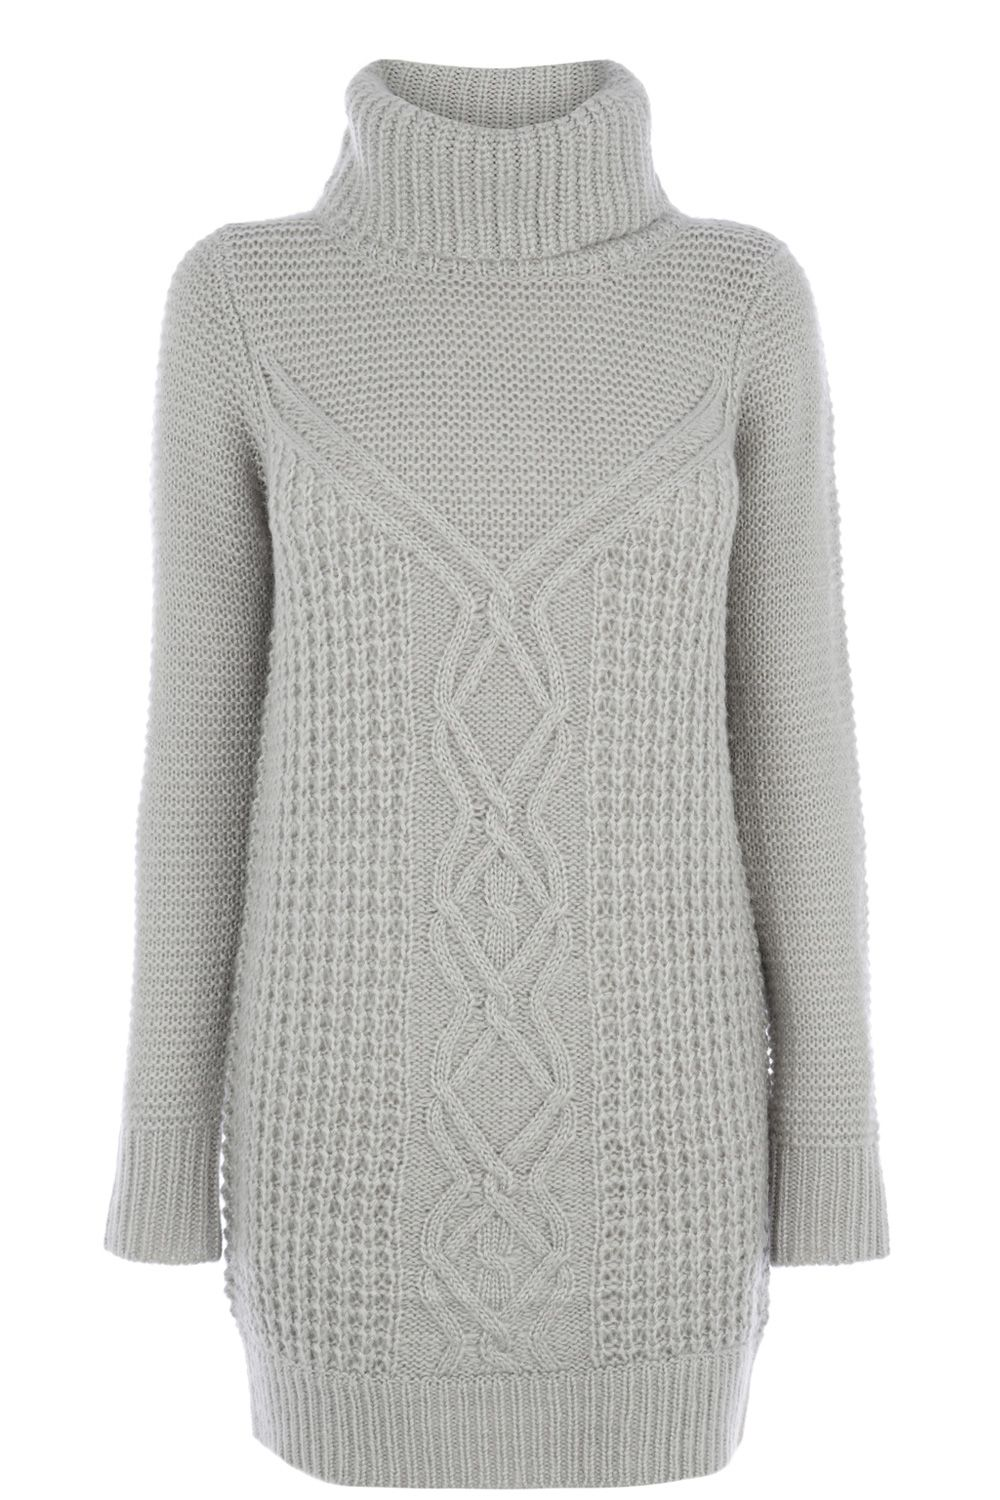 Fluffy Cable Knit Jumper Dress | Grey | Oasis Stores | BuSOS DAMA ...